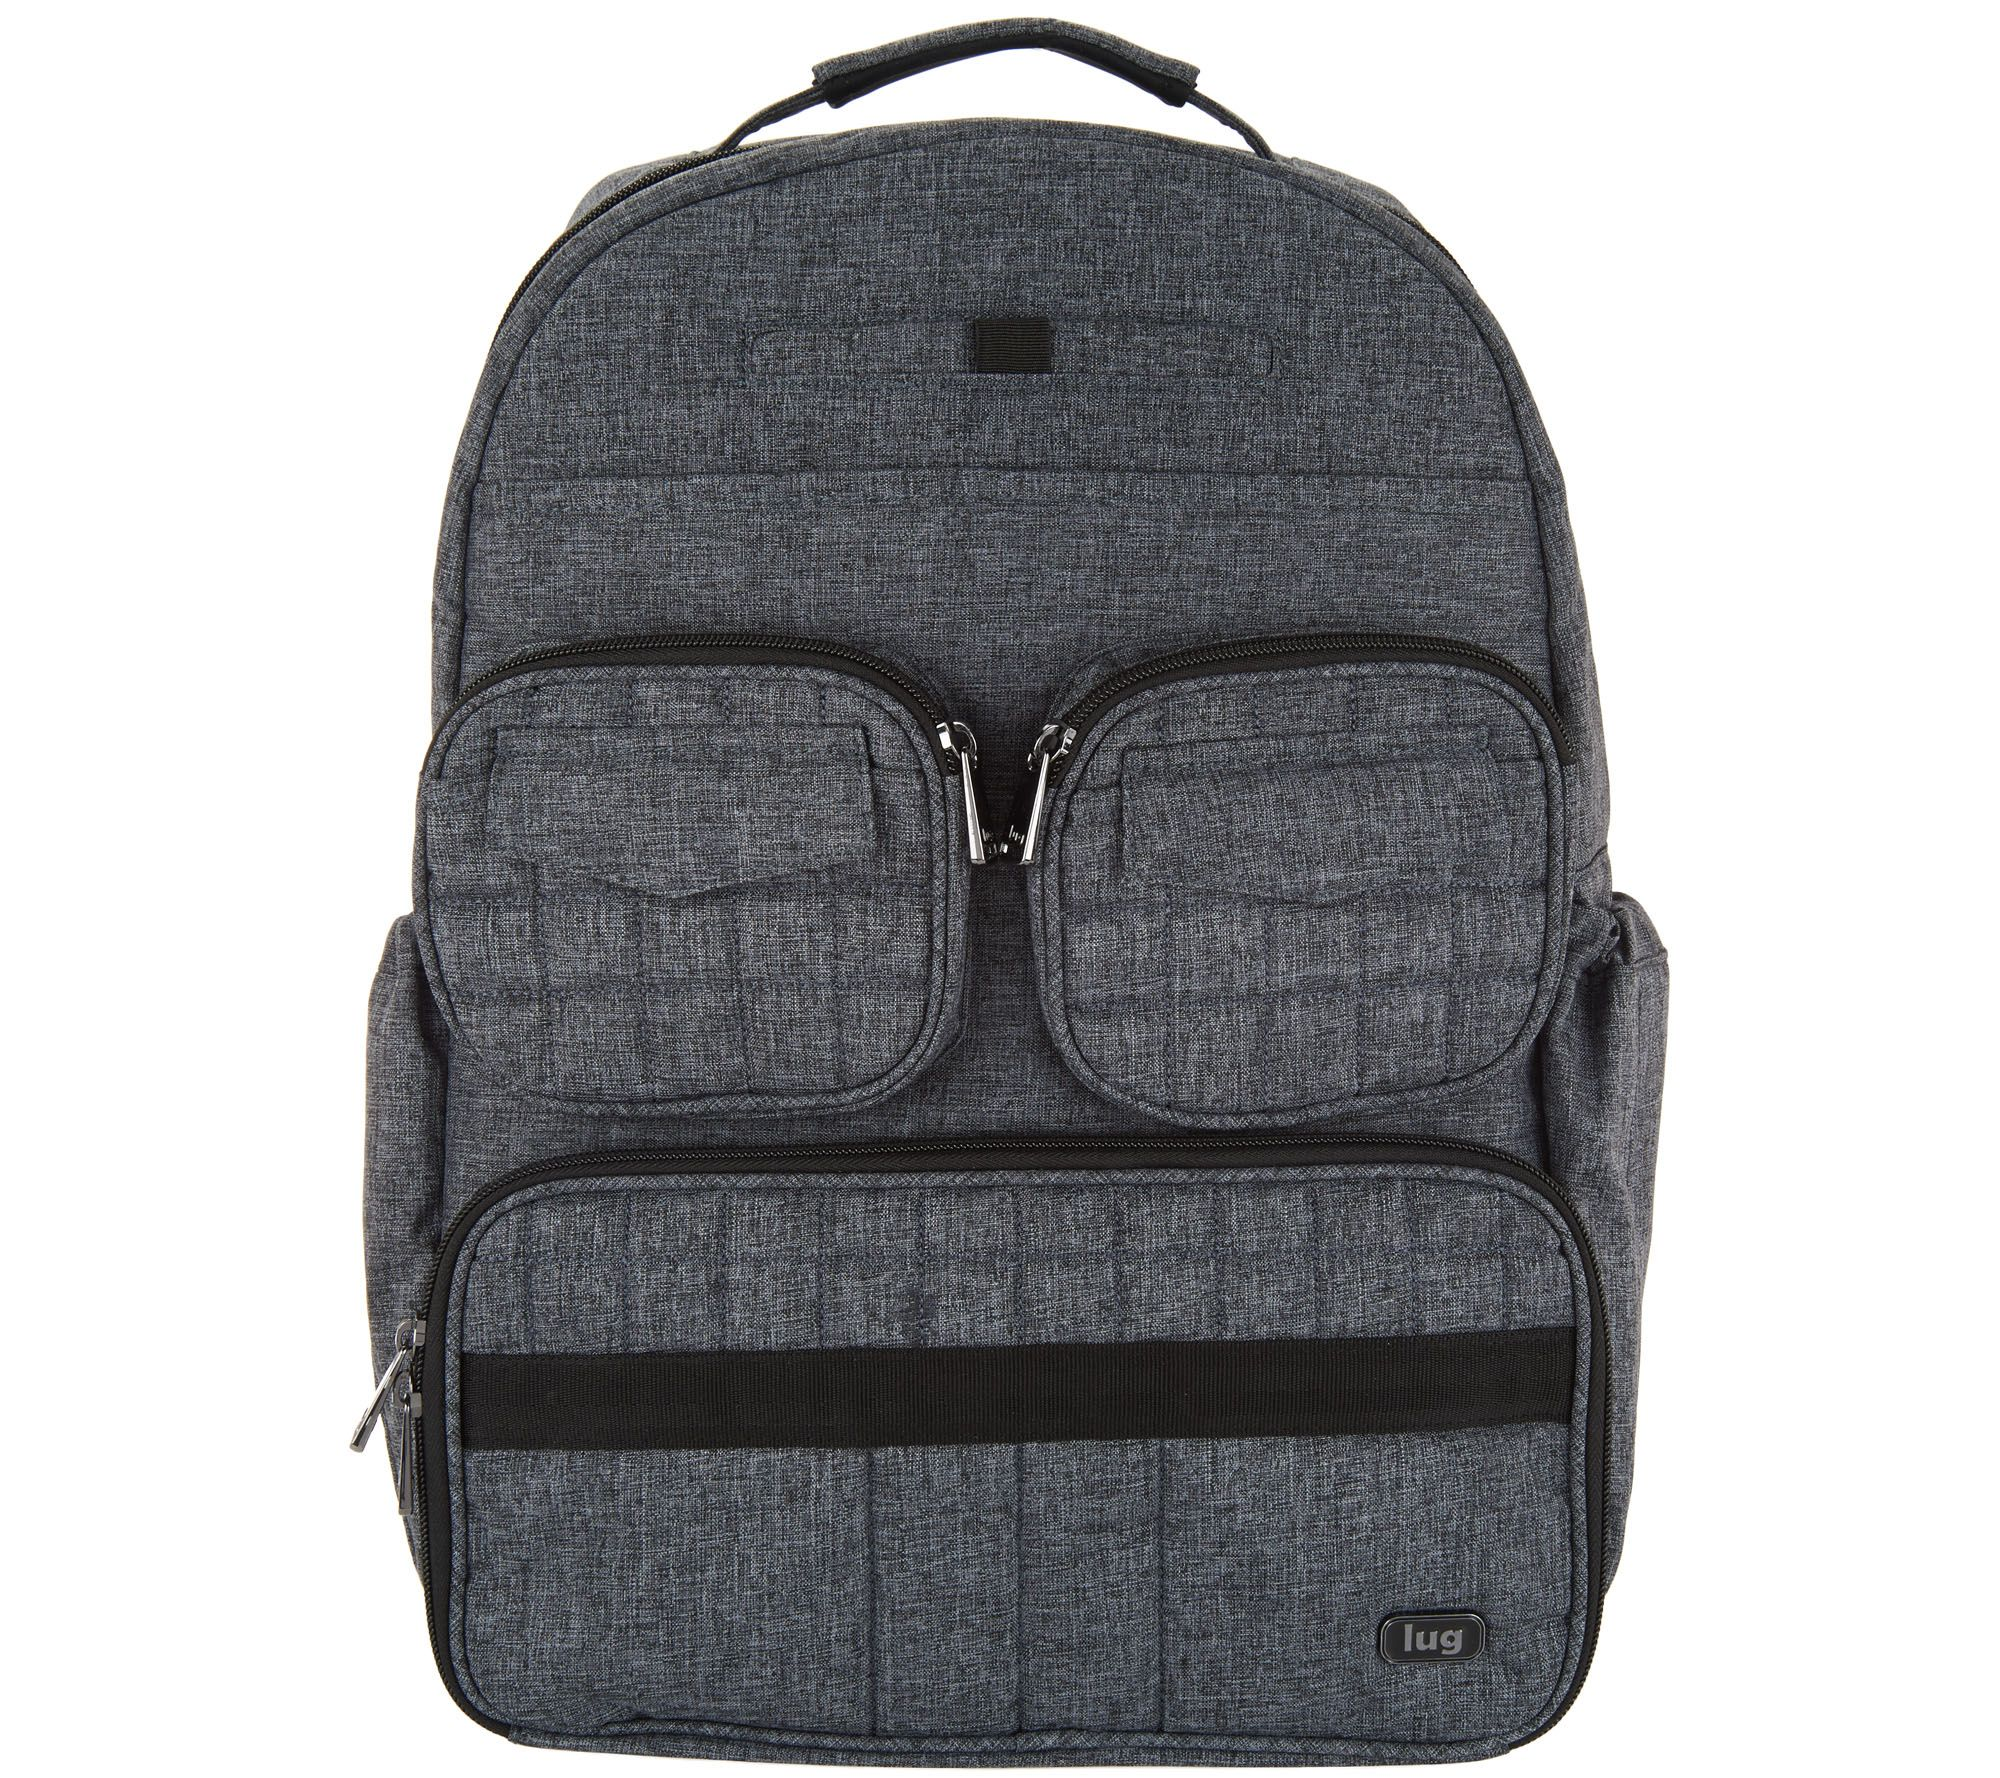 Lug Quilted Puddle Jumper Backpack - Page 1 — QVC.com 32bf63a7c914f